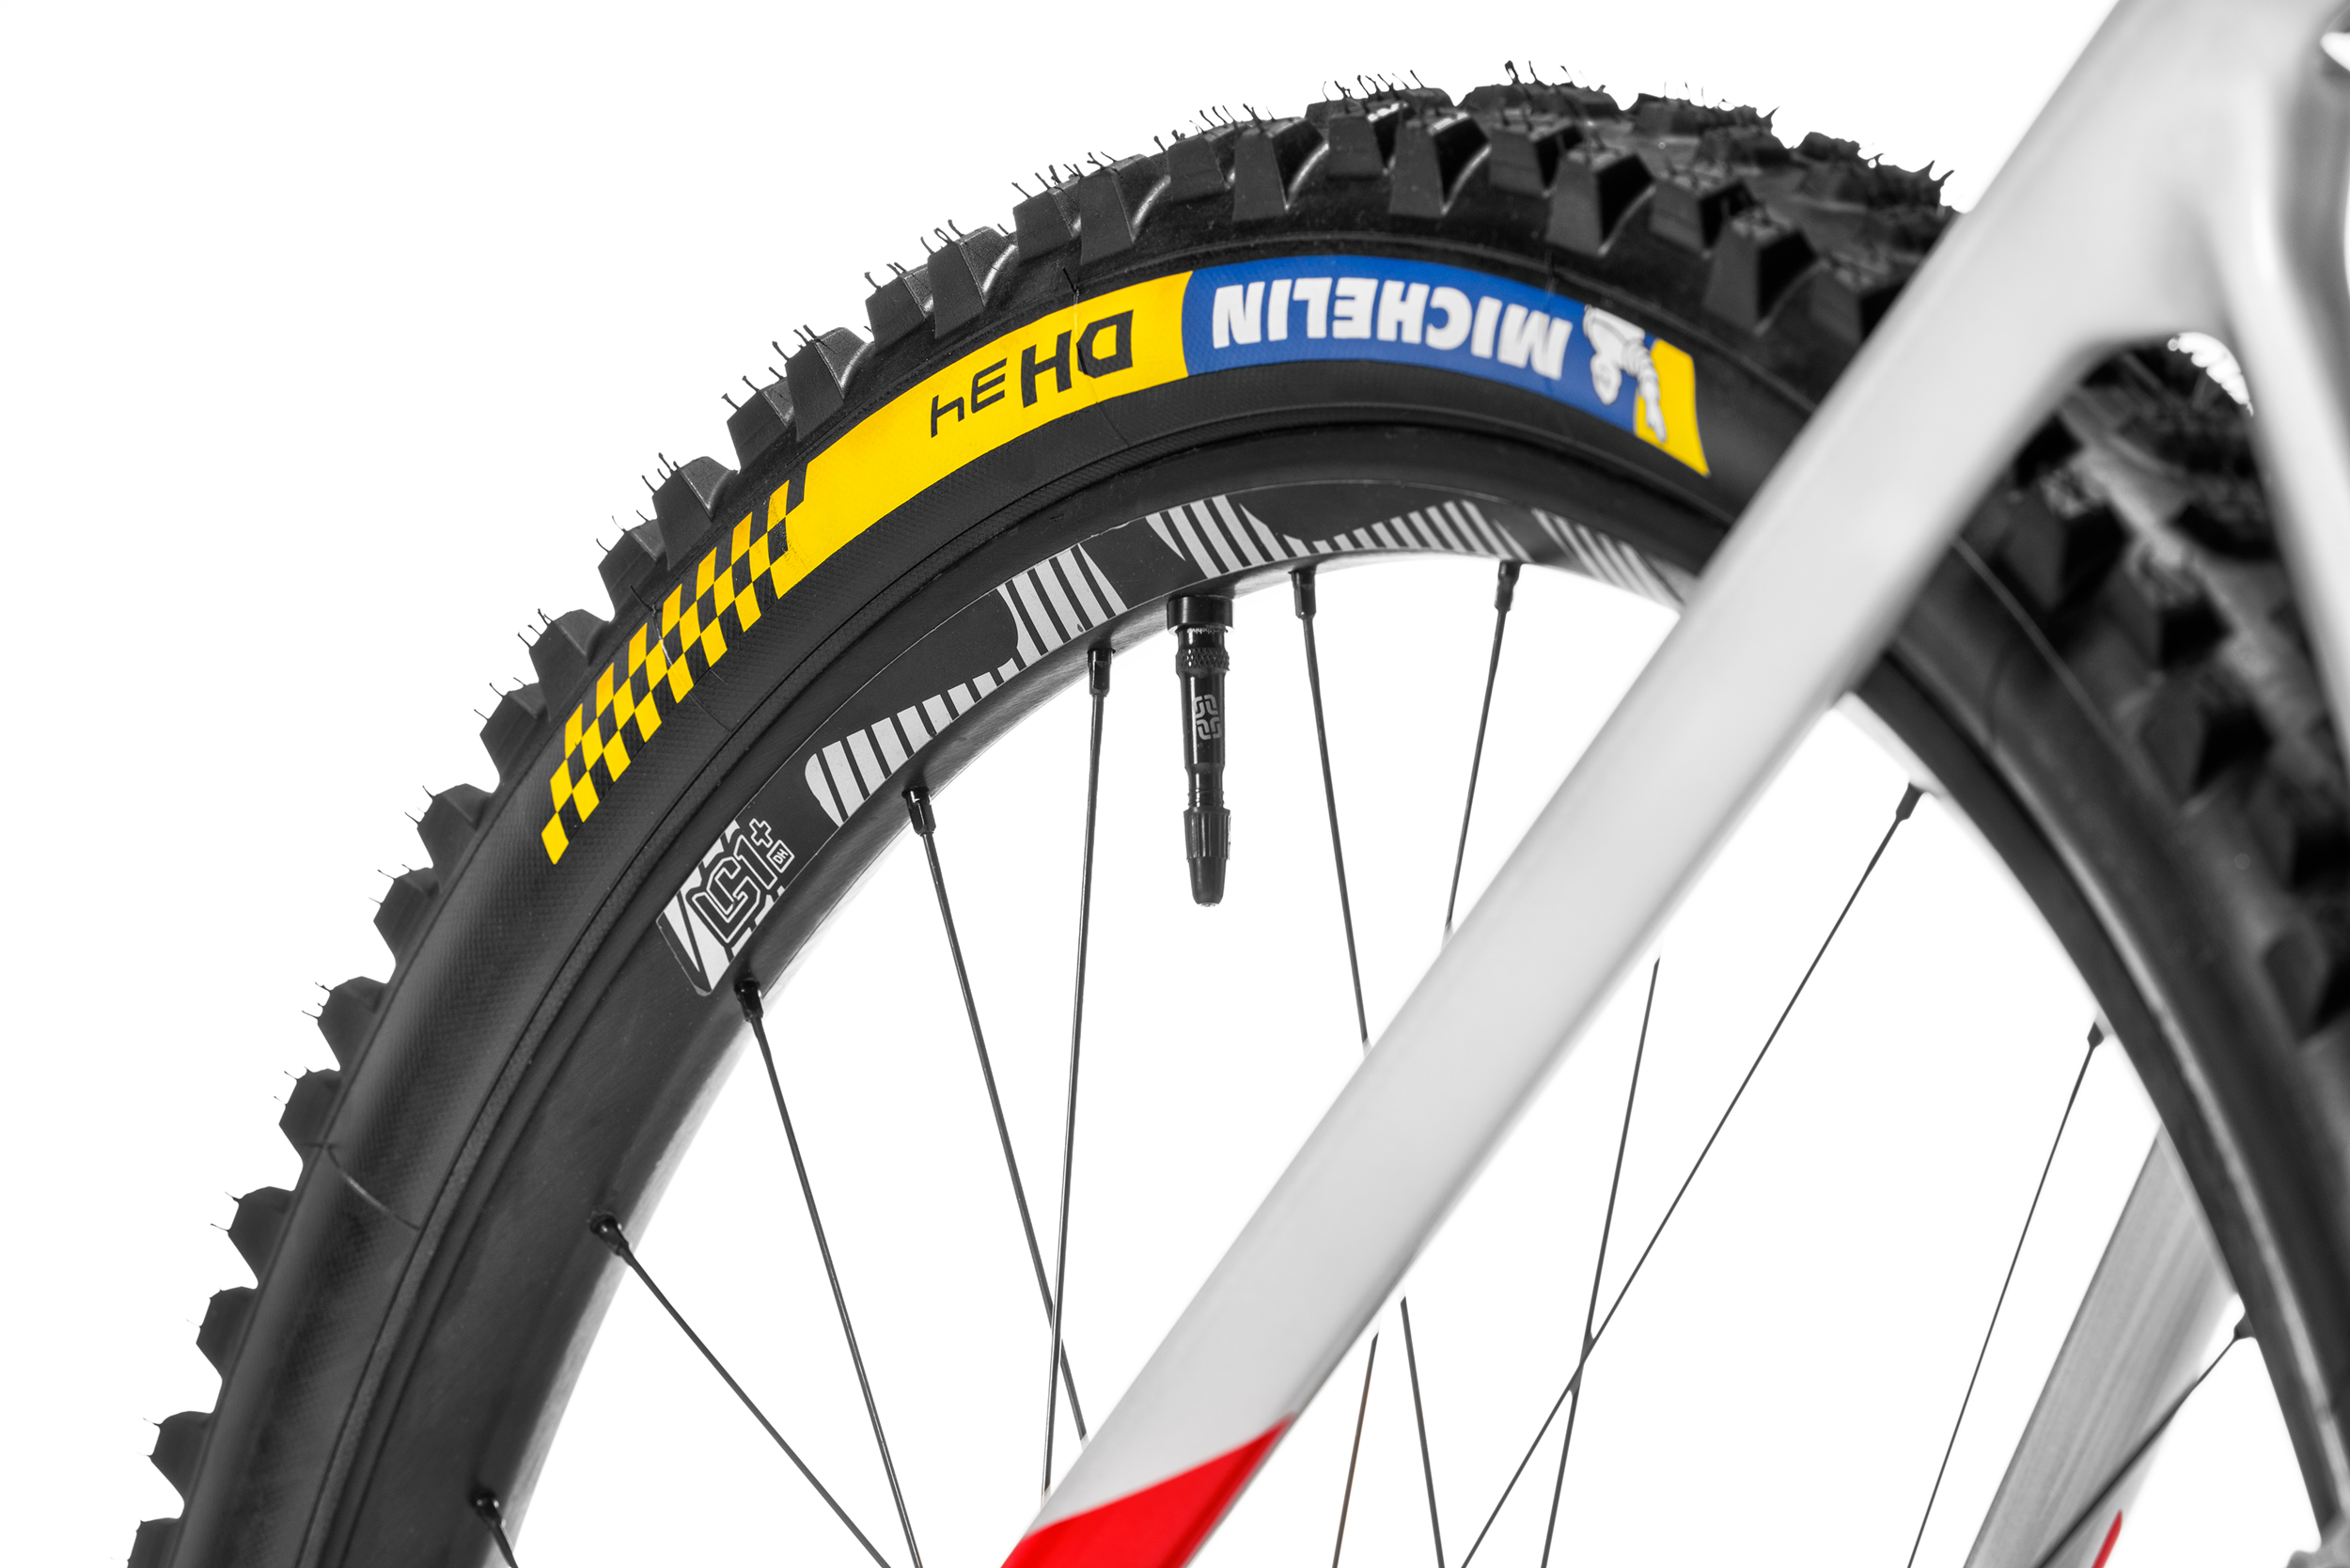 dry tire 1: DH22 dry tire 2: DH 34t wet tire: Mud check out www.michelin.de